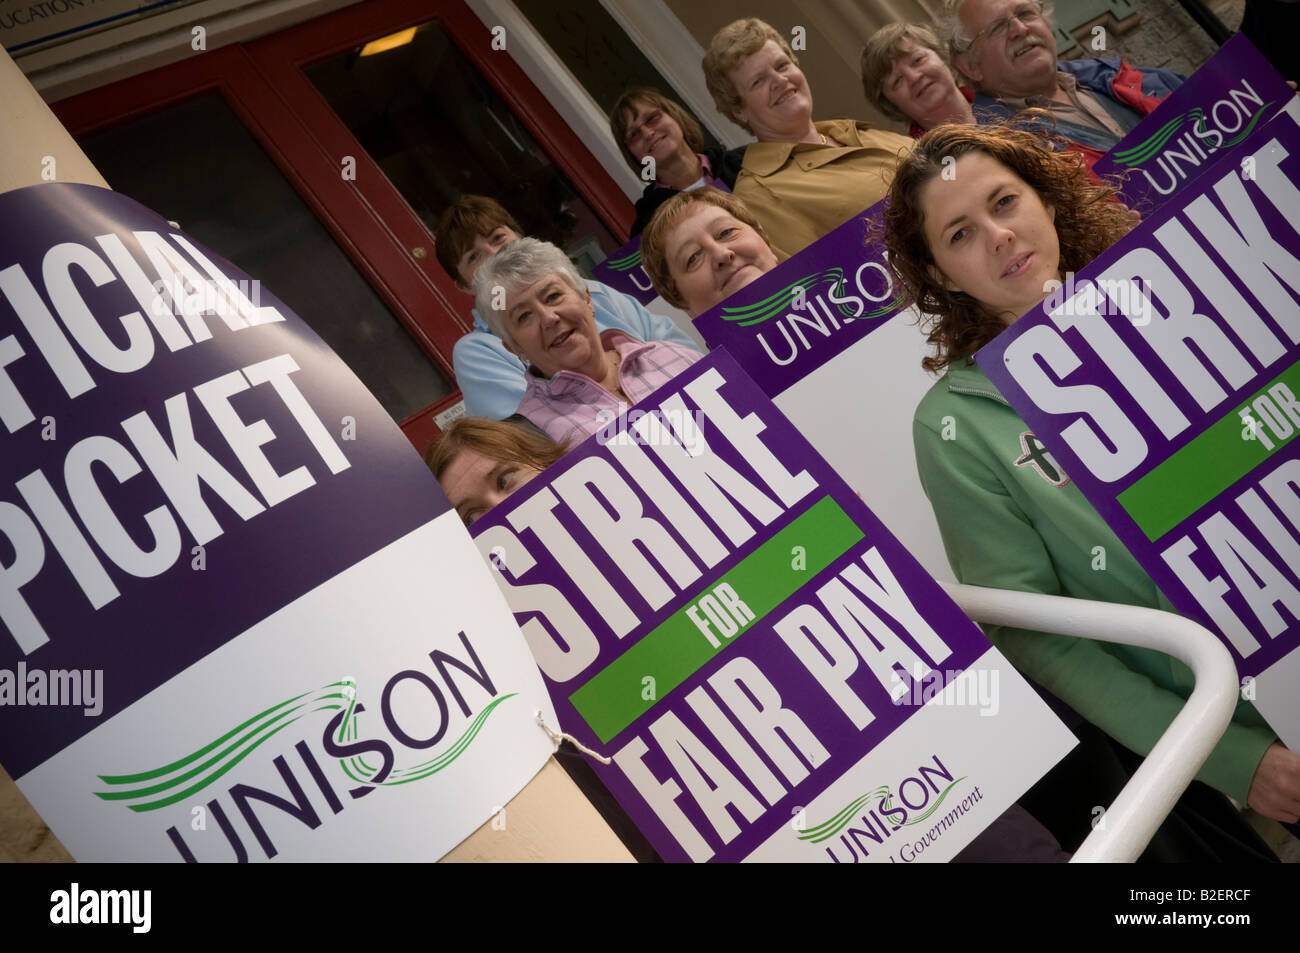 members of UNISON trade union on strike for fair pay picketing local authority offices Aberystwyth July 2008 - Stock Image